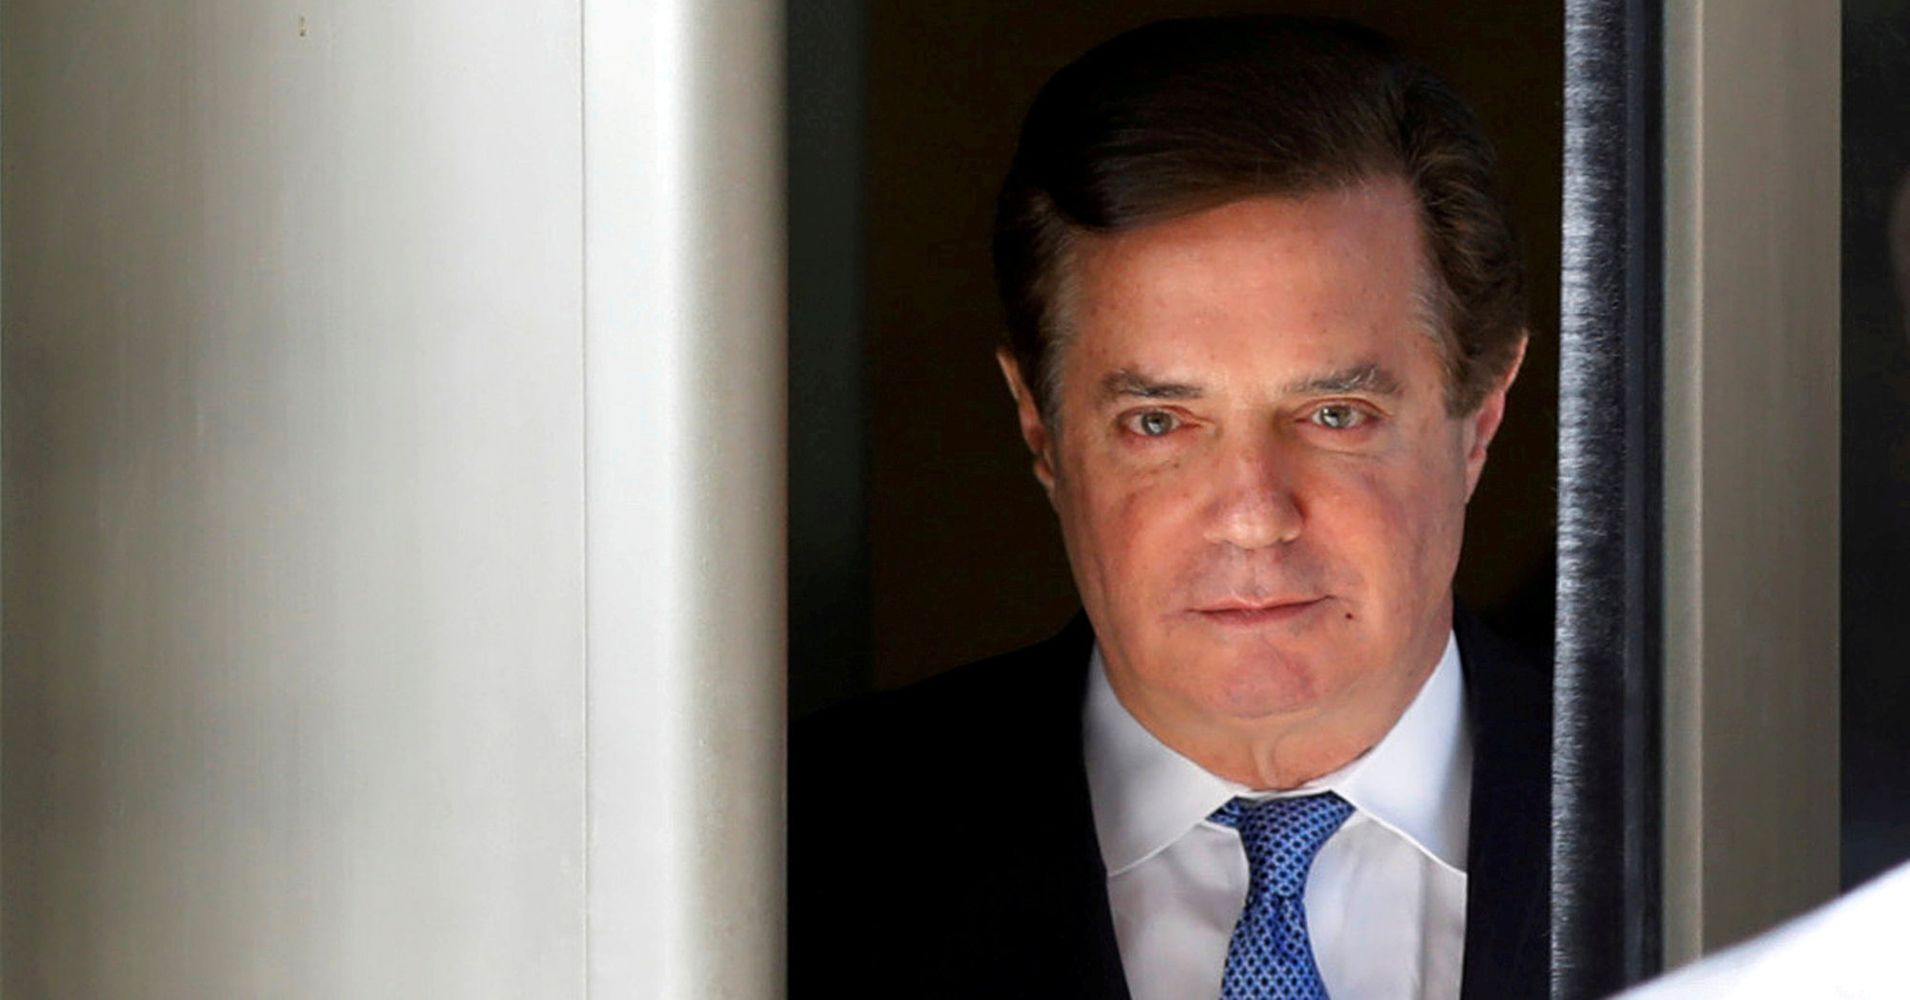 How Notes From Jurors Indicated Jury Was Ready To Convict Paul Manafort